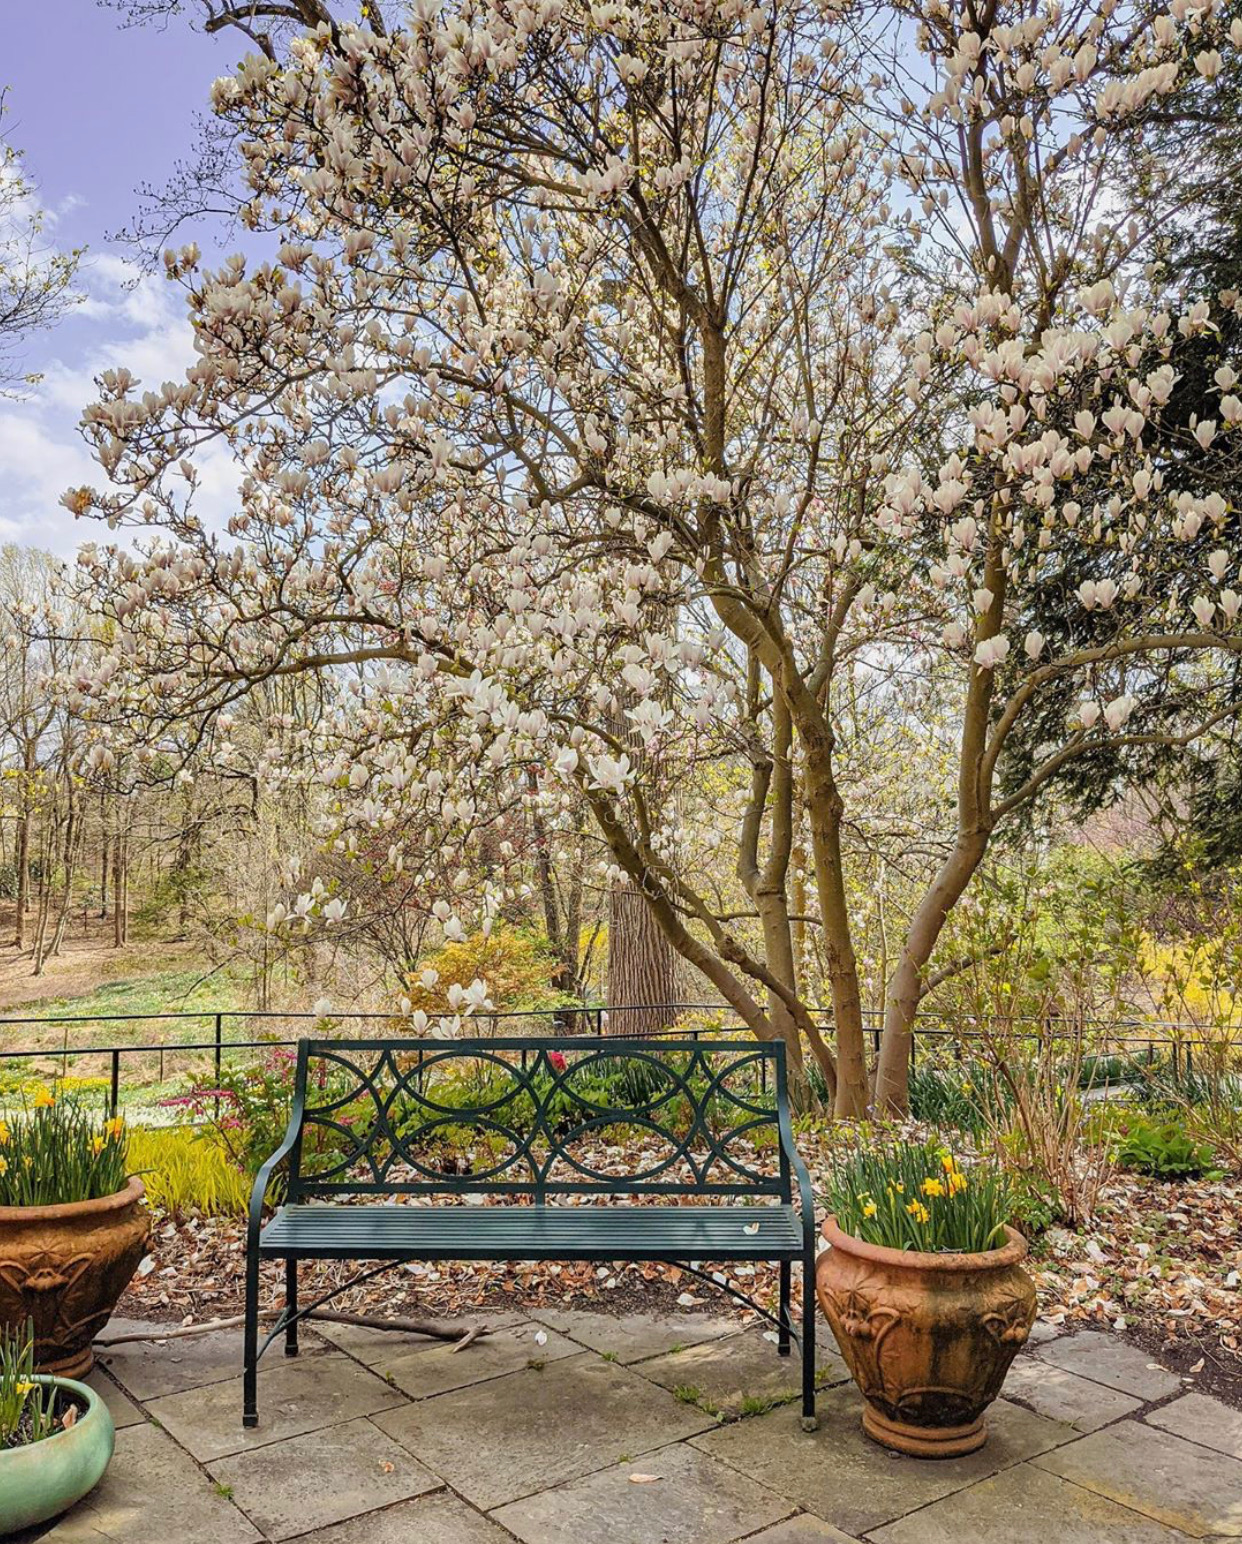 nj mom reeves reed arboretum best gardens and nature centers in new jersey